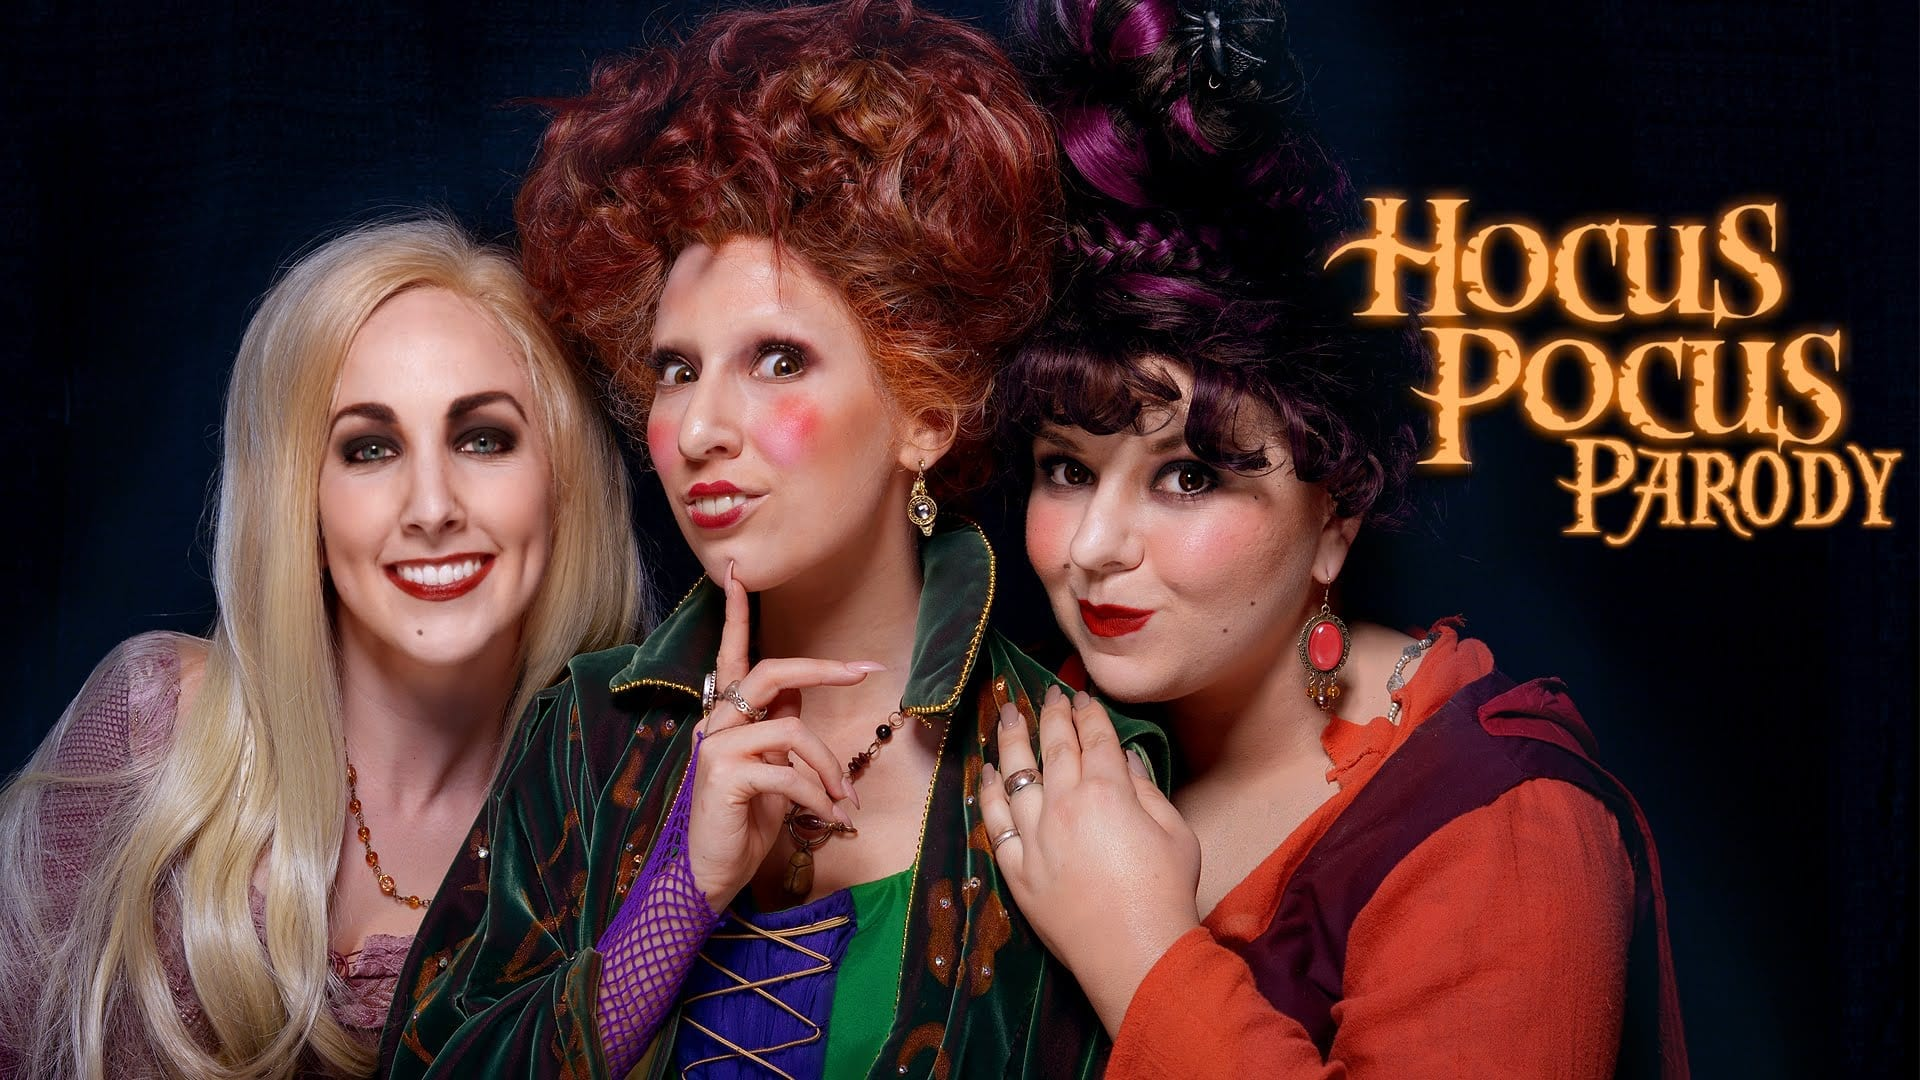 Why 'Hocus Pocus' is the best Halloween film ever